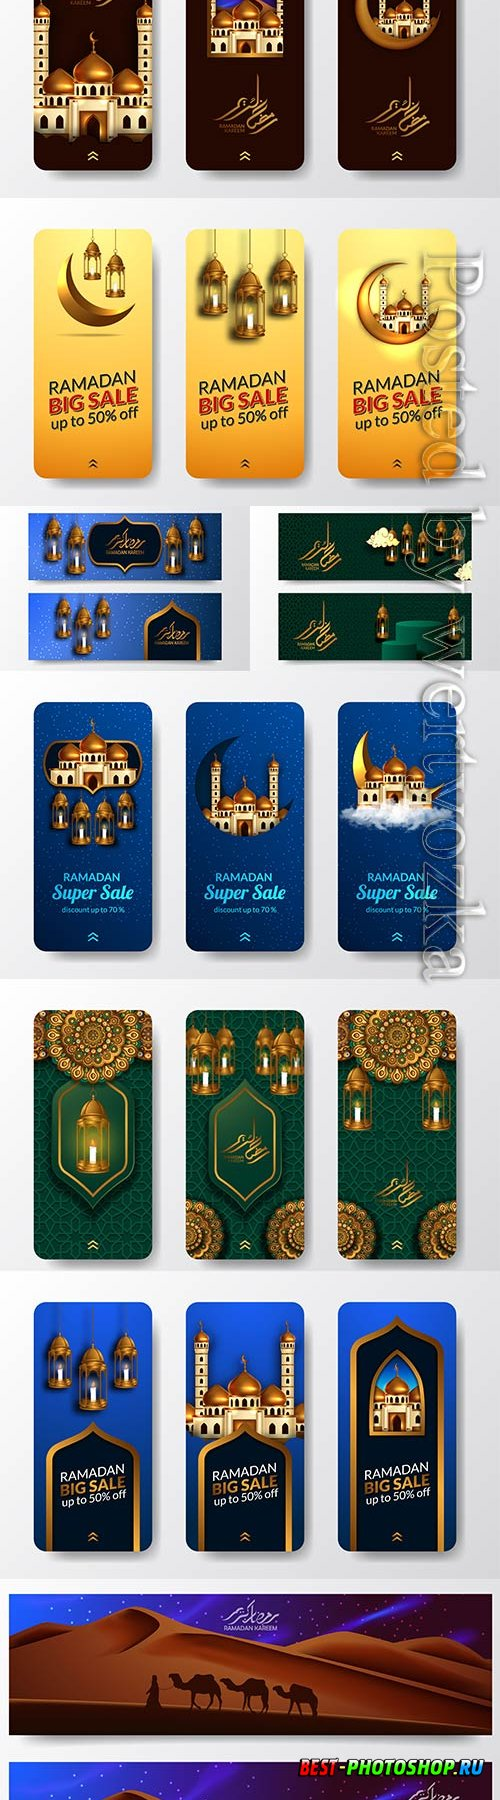 Ramadan kareem decoration with golden luxury mosque for greeting card template